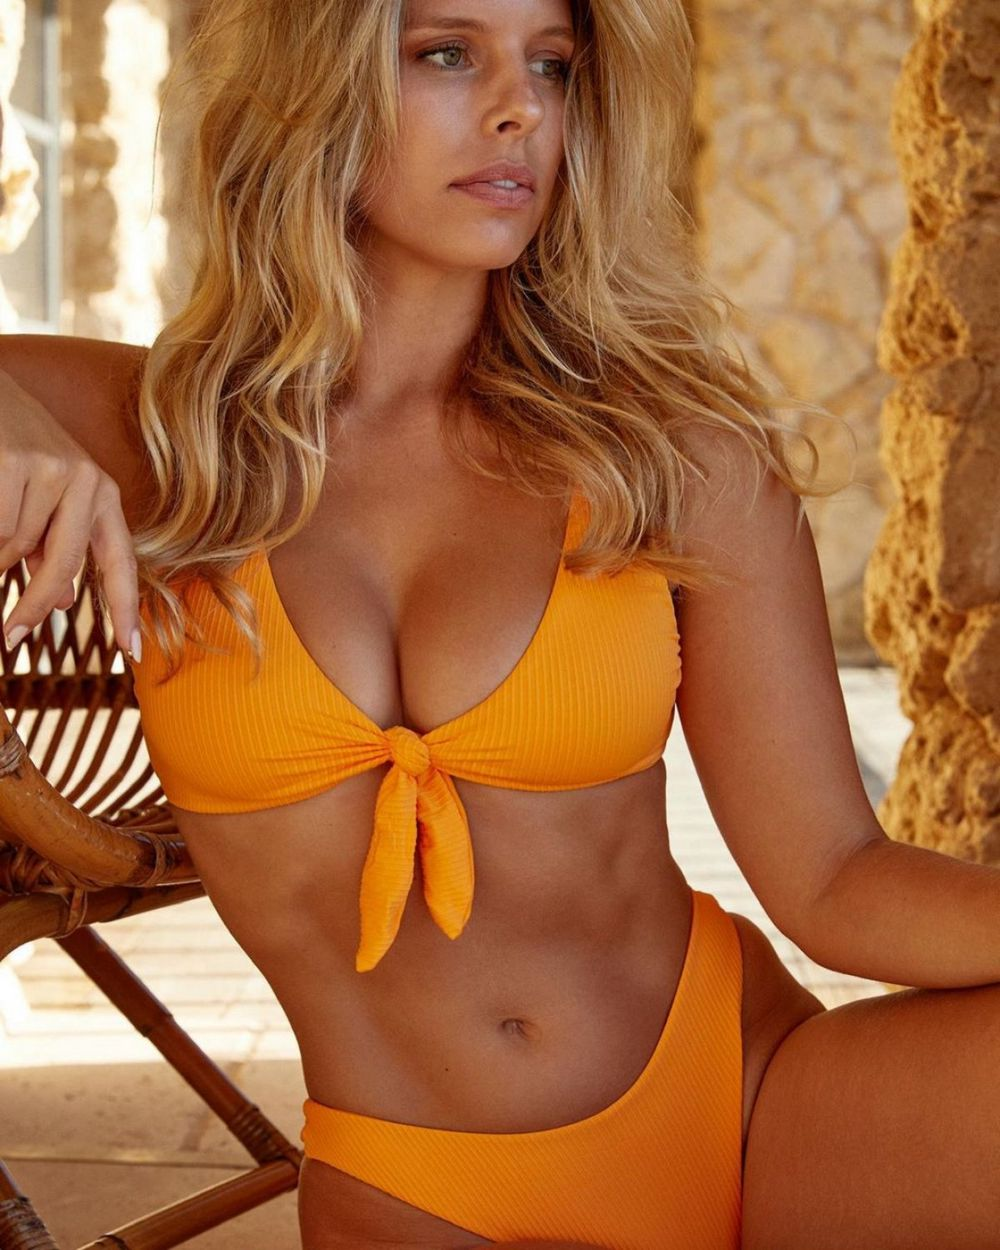 Natasha Oakley Looking Busty in a Yellow Bikini!